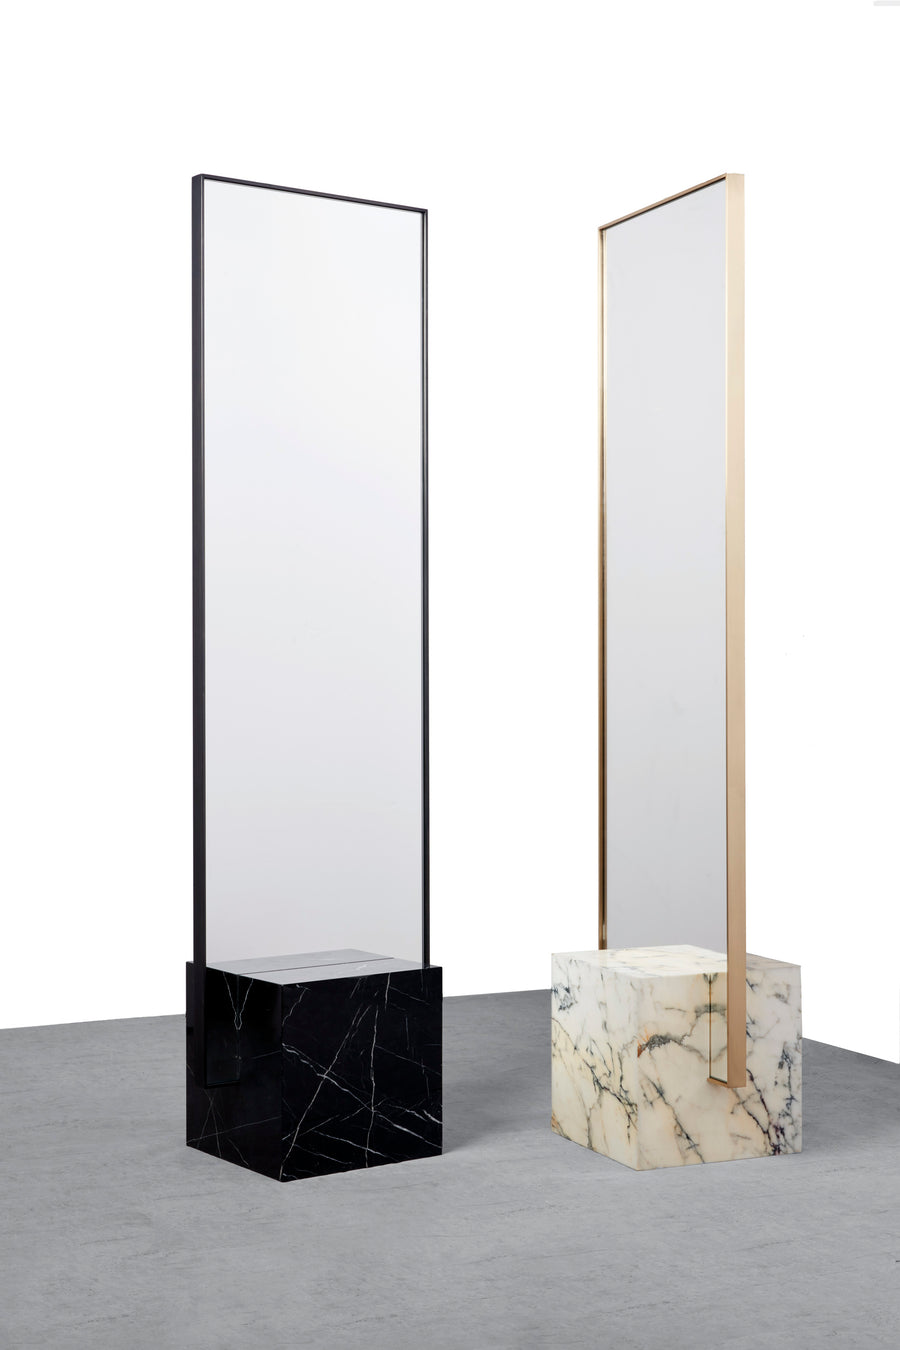 COEXIST Standing Mirror by Arielle Assouline-Lichten for Slash Objects - DUPLEX DESIGN